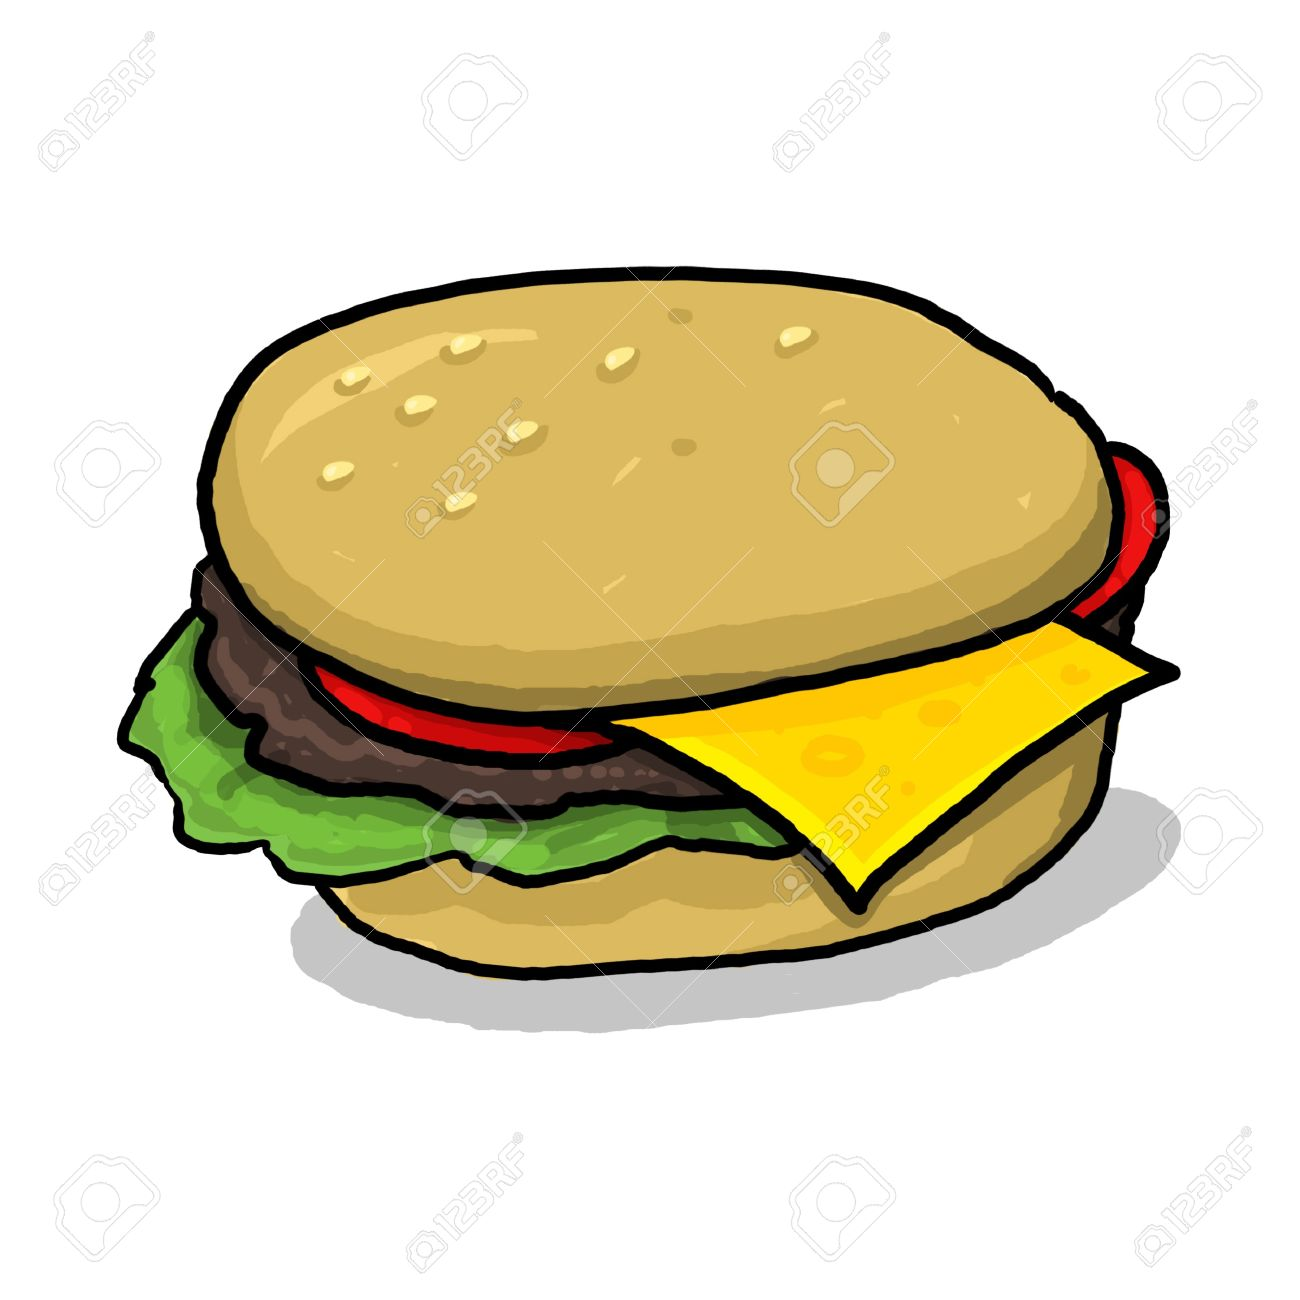 isolated cheeseburger illustration; hamburger with all the condiments; meat and vegetables between two halves of a hamburger bun; cartoon style cheeseburger drawing Stock Illustration - 9924050